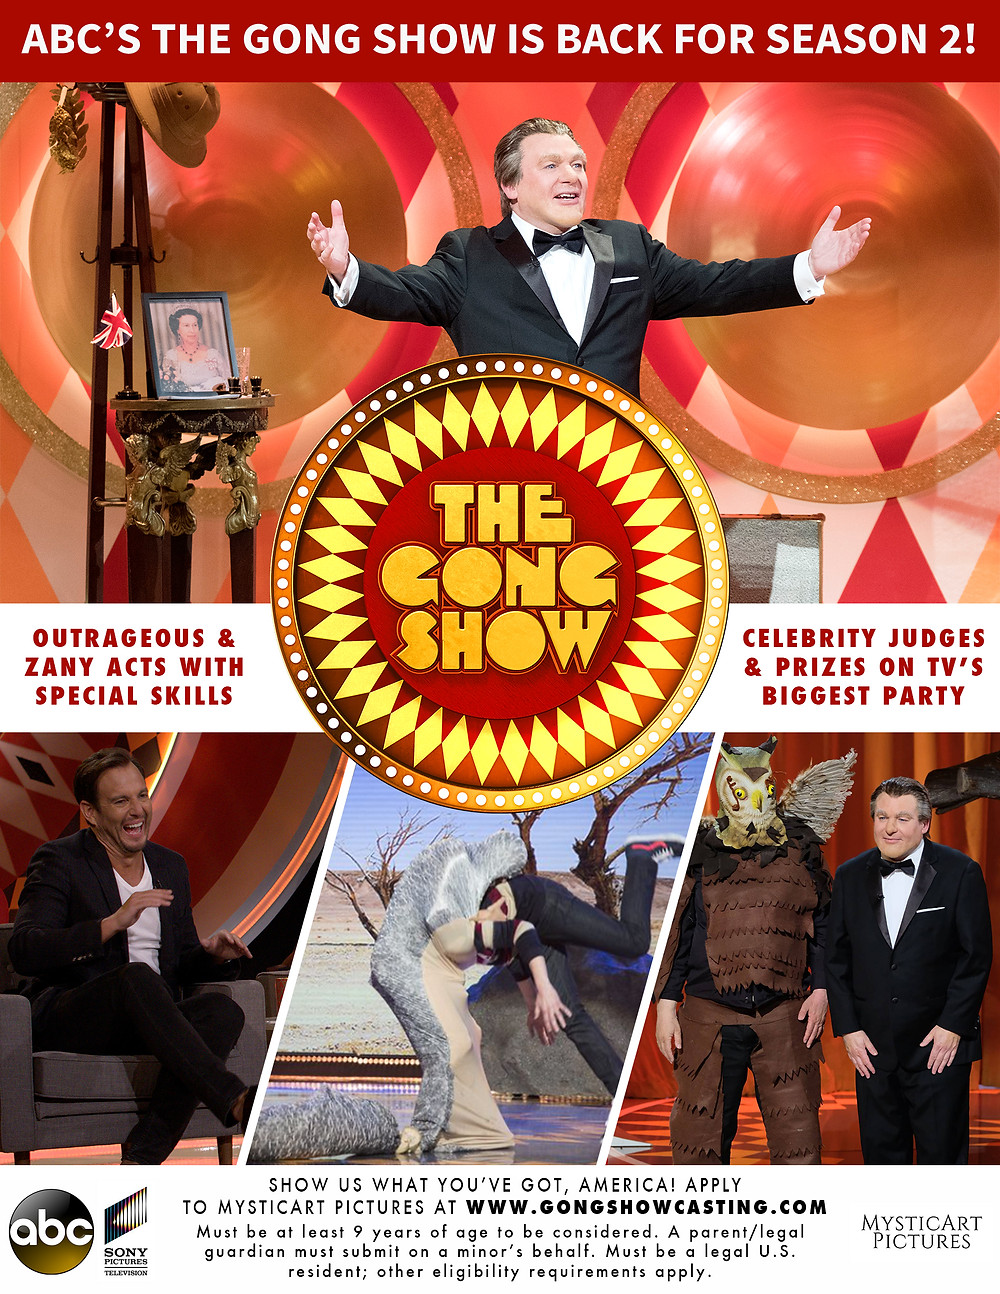 THE ICONIC VARIETY SERIES IS BACK FOR SEASON 2 ON ABC WITH HOST MIKE MYERS AS TOMMY MAITLAND!